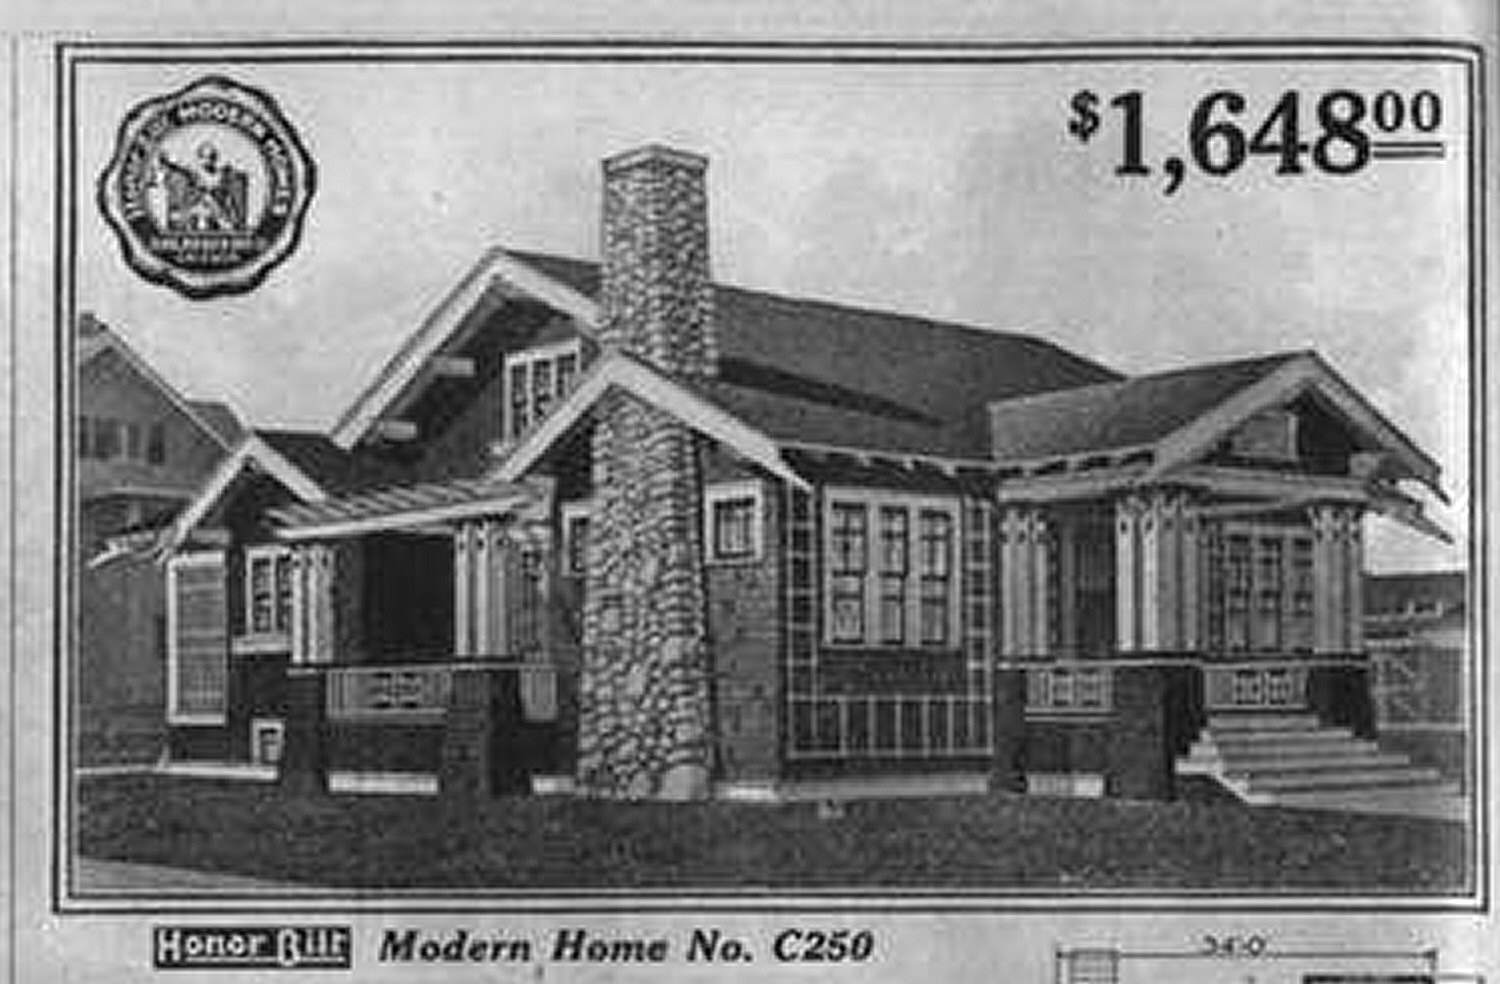 black and white illustration of bungalow costing $1,648.00